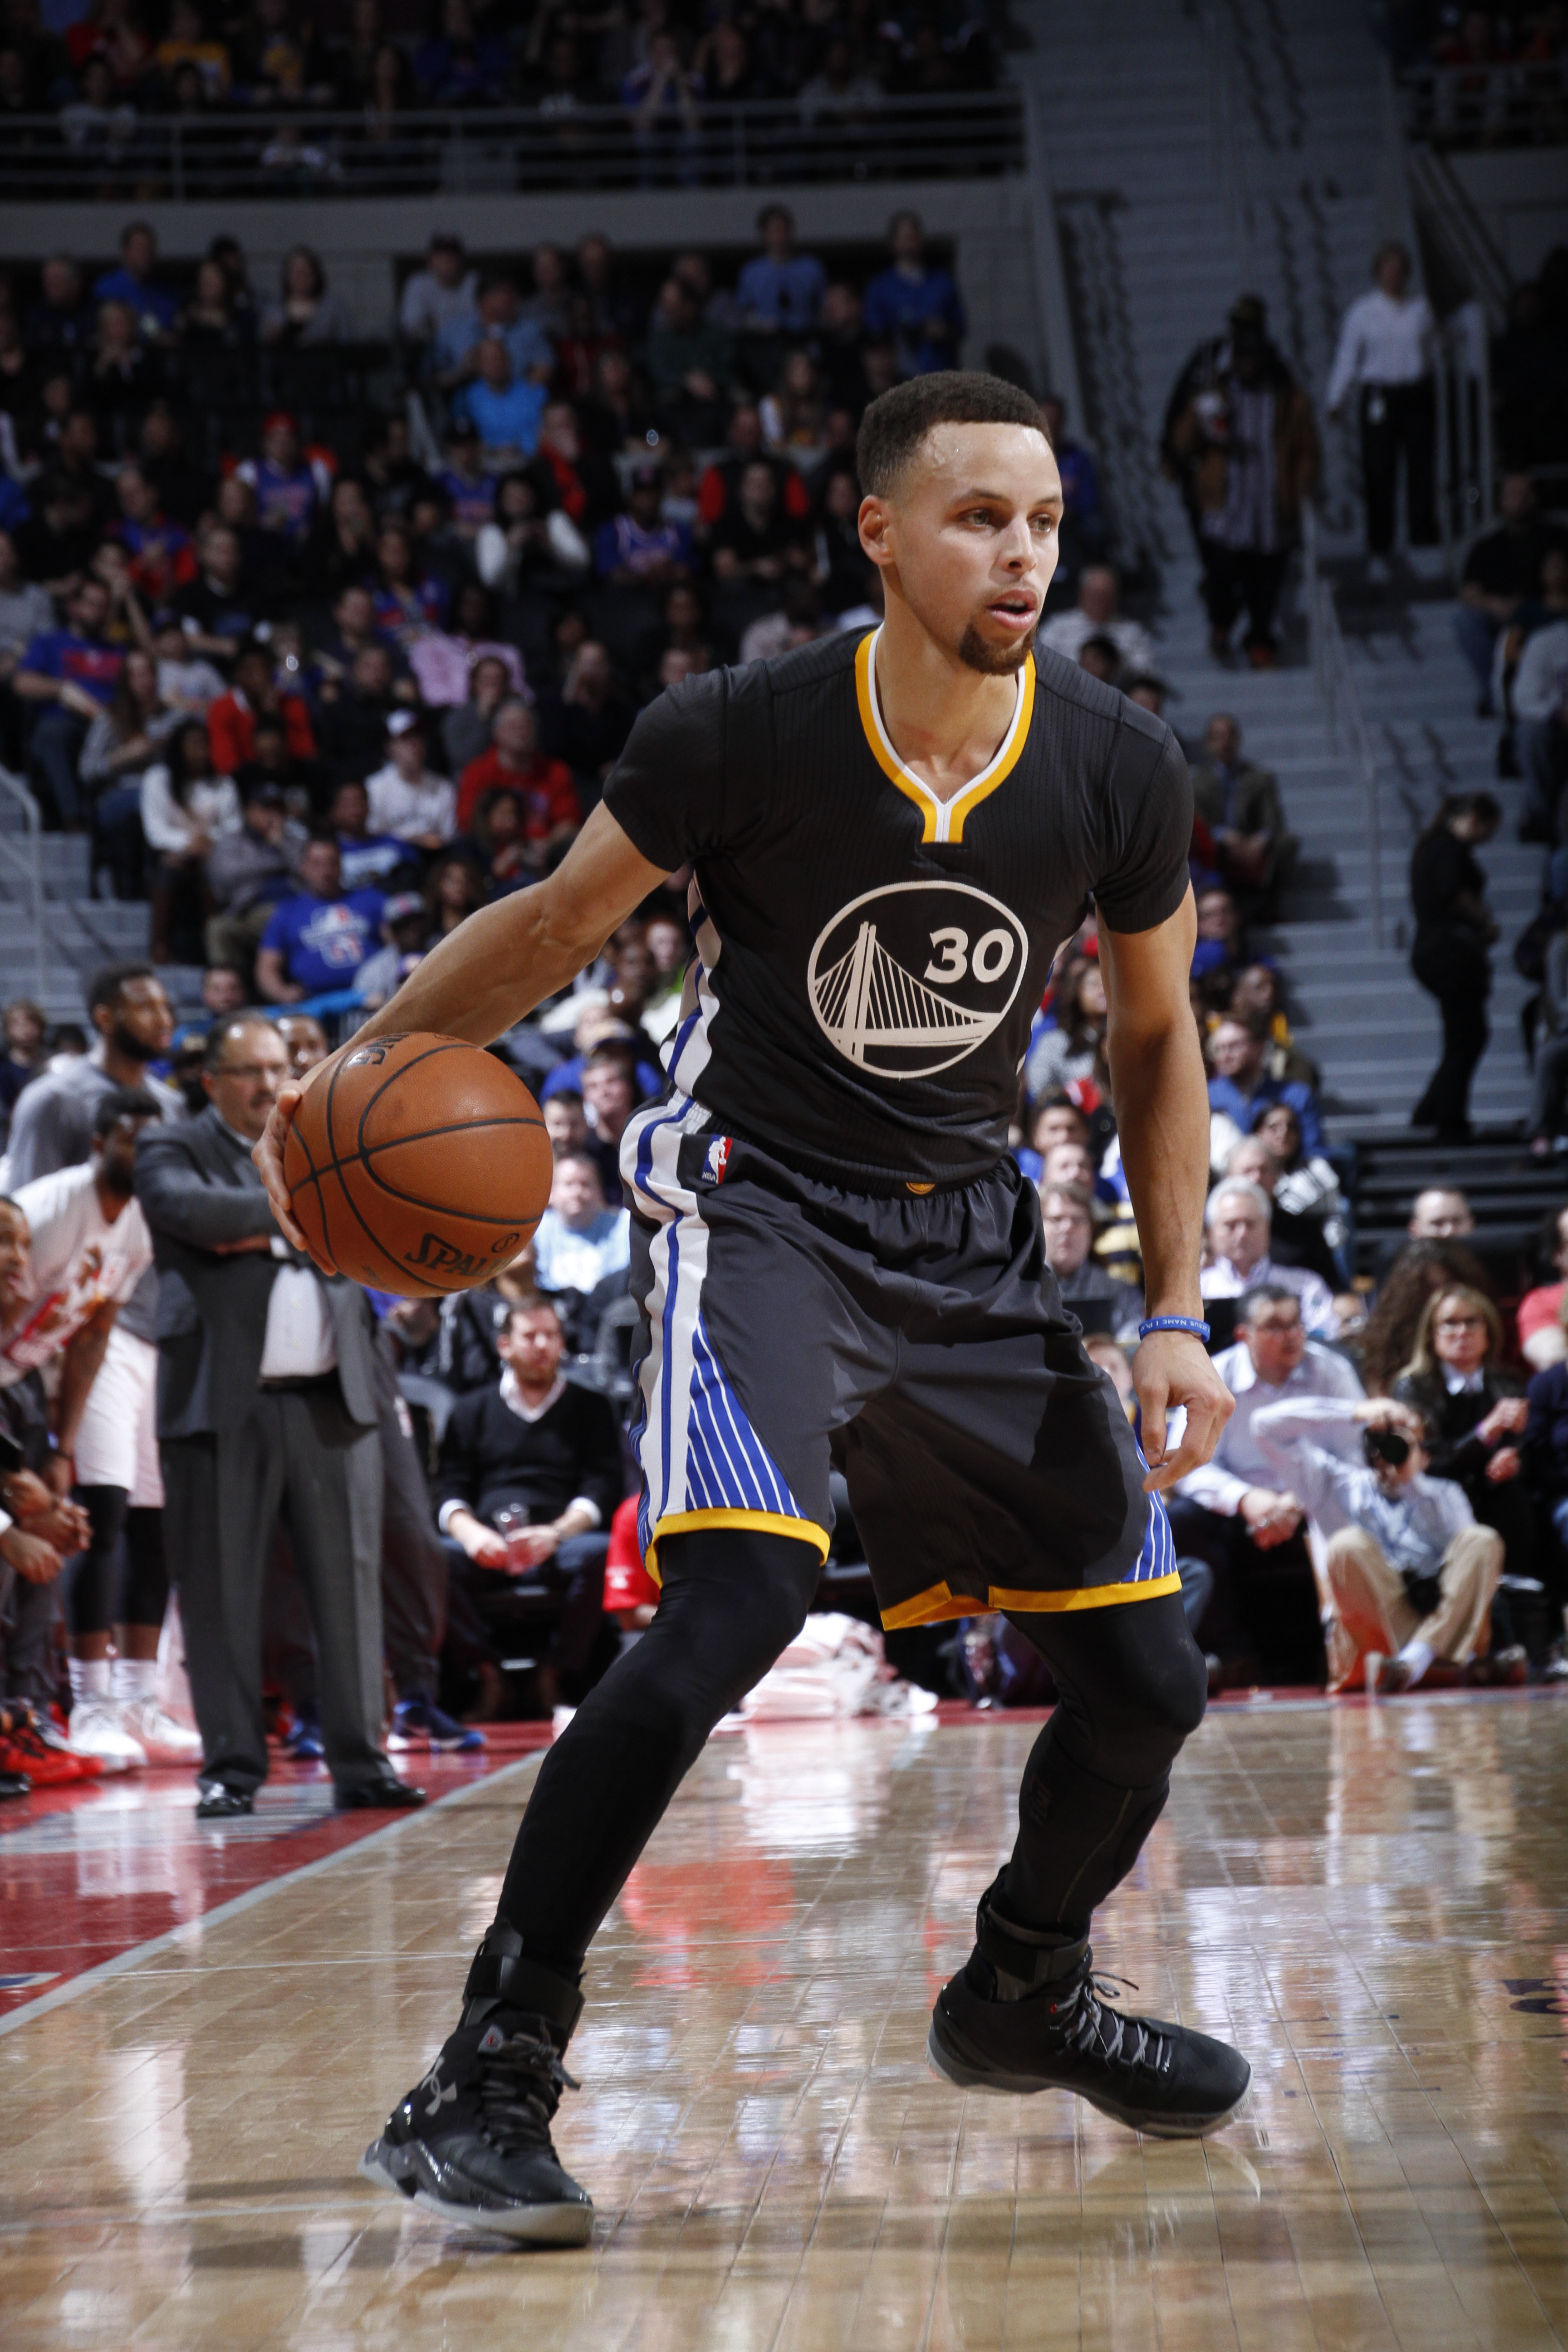 AUBURN HILLS, MI - JANUARY 16:  Stephen Curry #30 of the Golden State Warriors handles the ball against the Detroit Pistons on January 16, 2016 at The Palace of Auburn Hills in Auburn Hills, Michigan. (Photo by B. Sevald/Einstein/NBAE via Getty Images)